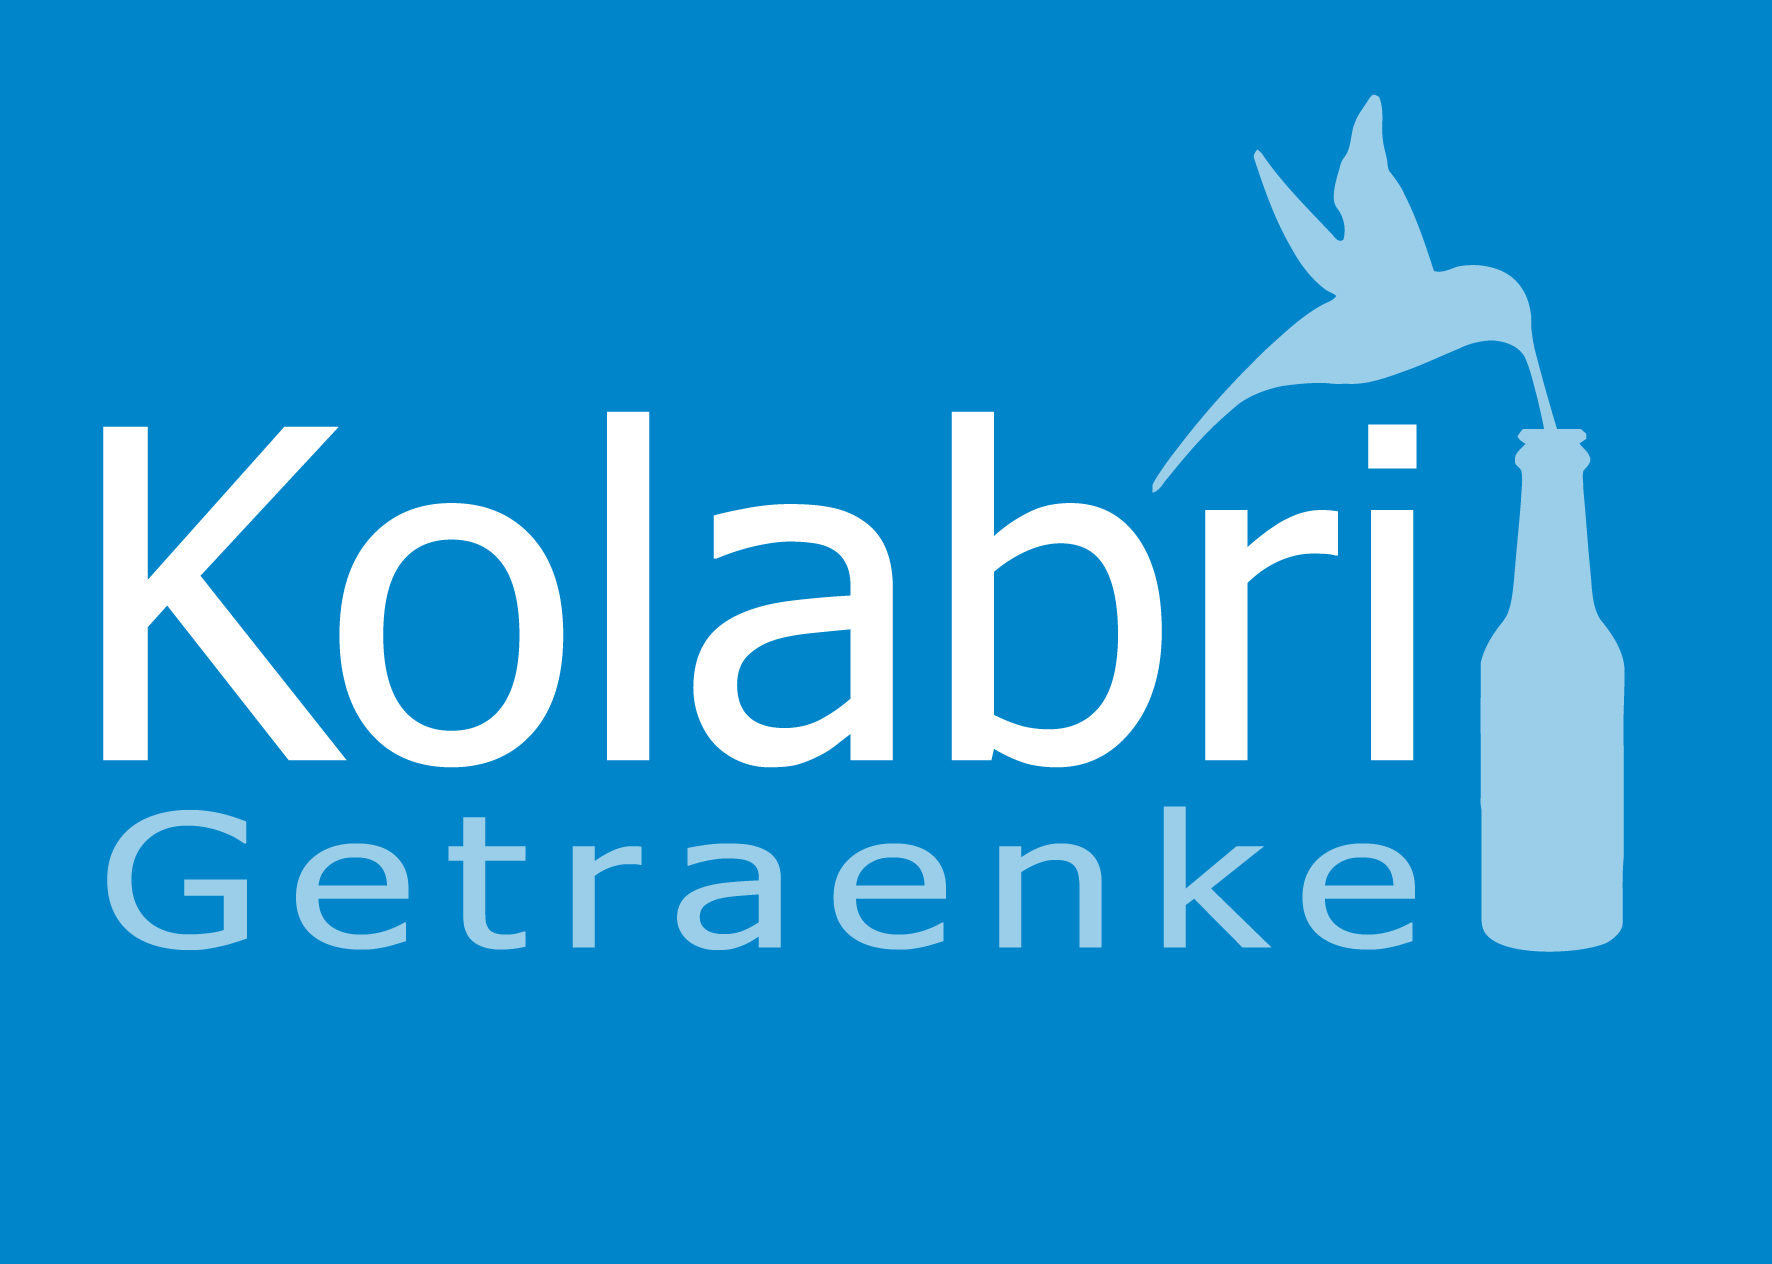 Kolabri Getränke